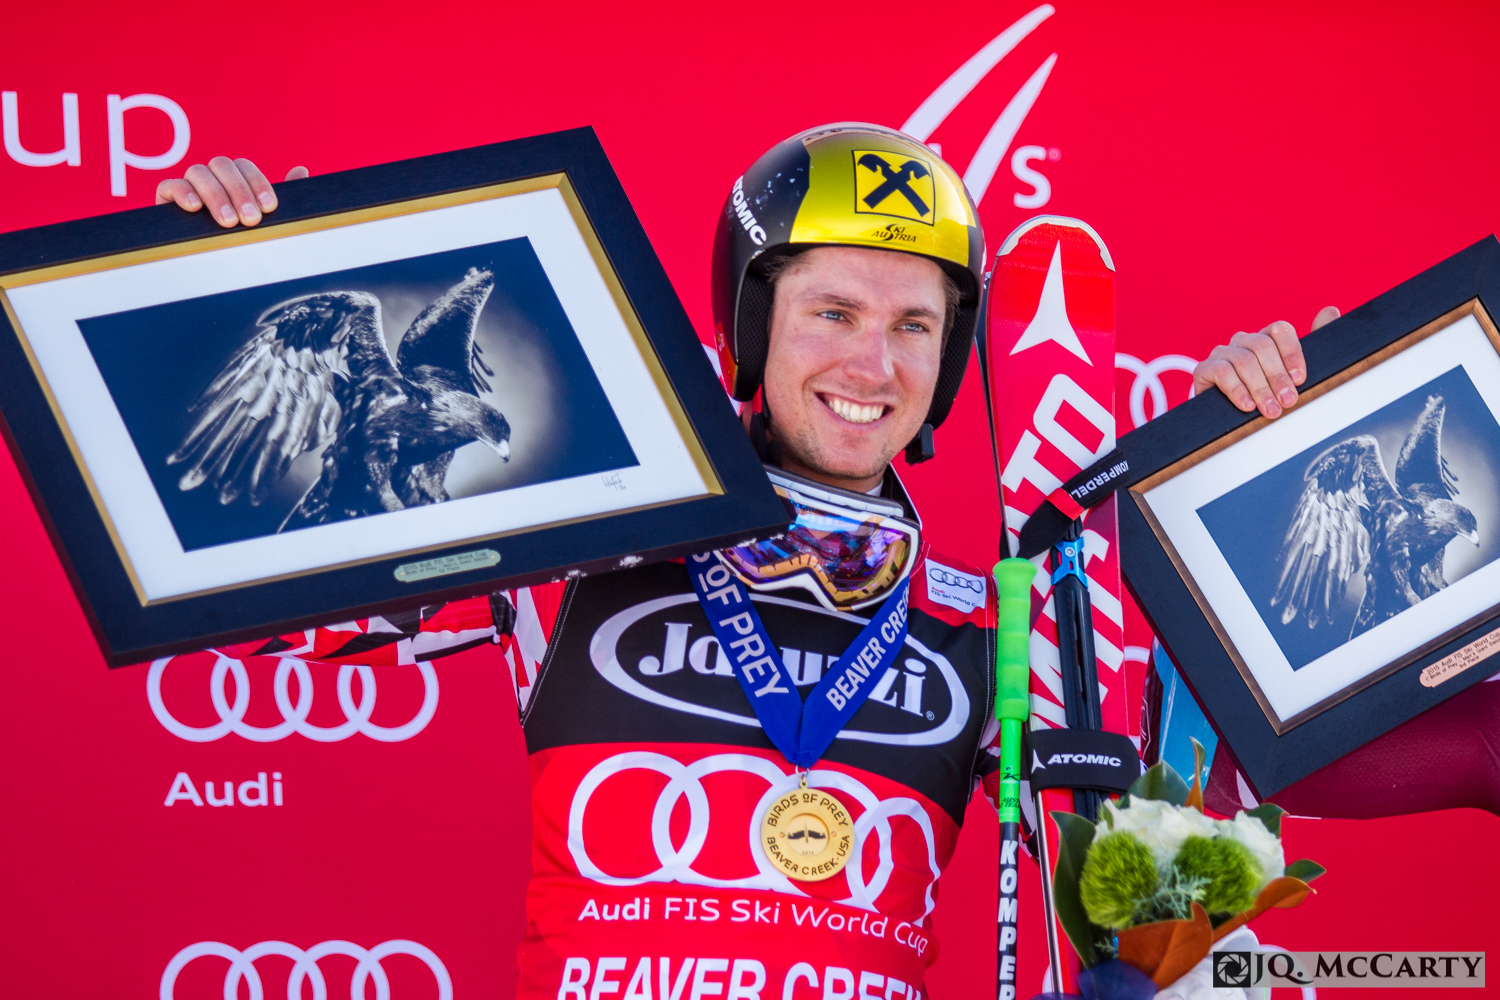 Austrian Marcel Hirscher celebrates another World Cup gold medal after winning the giant slalom race at the Birds of Prey World Cup event Sunday in Beaver Creek.